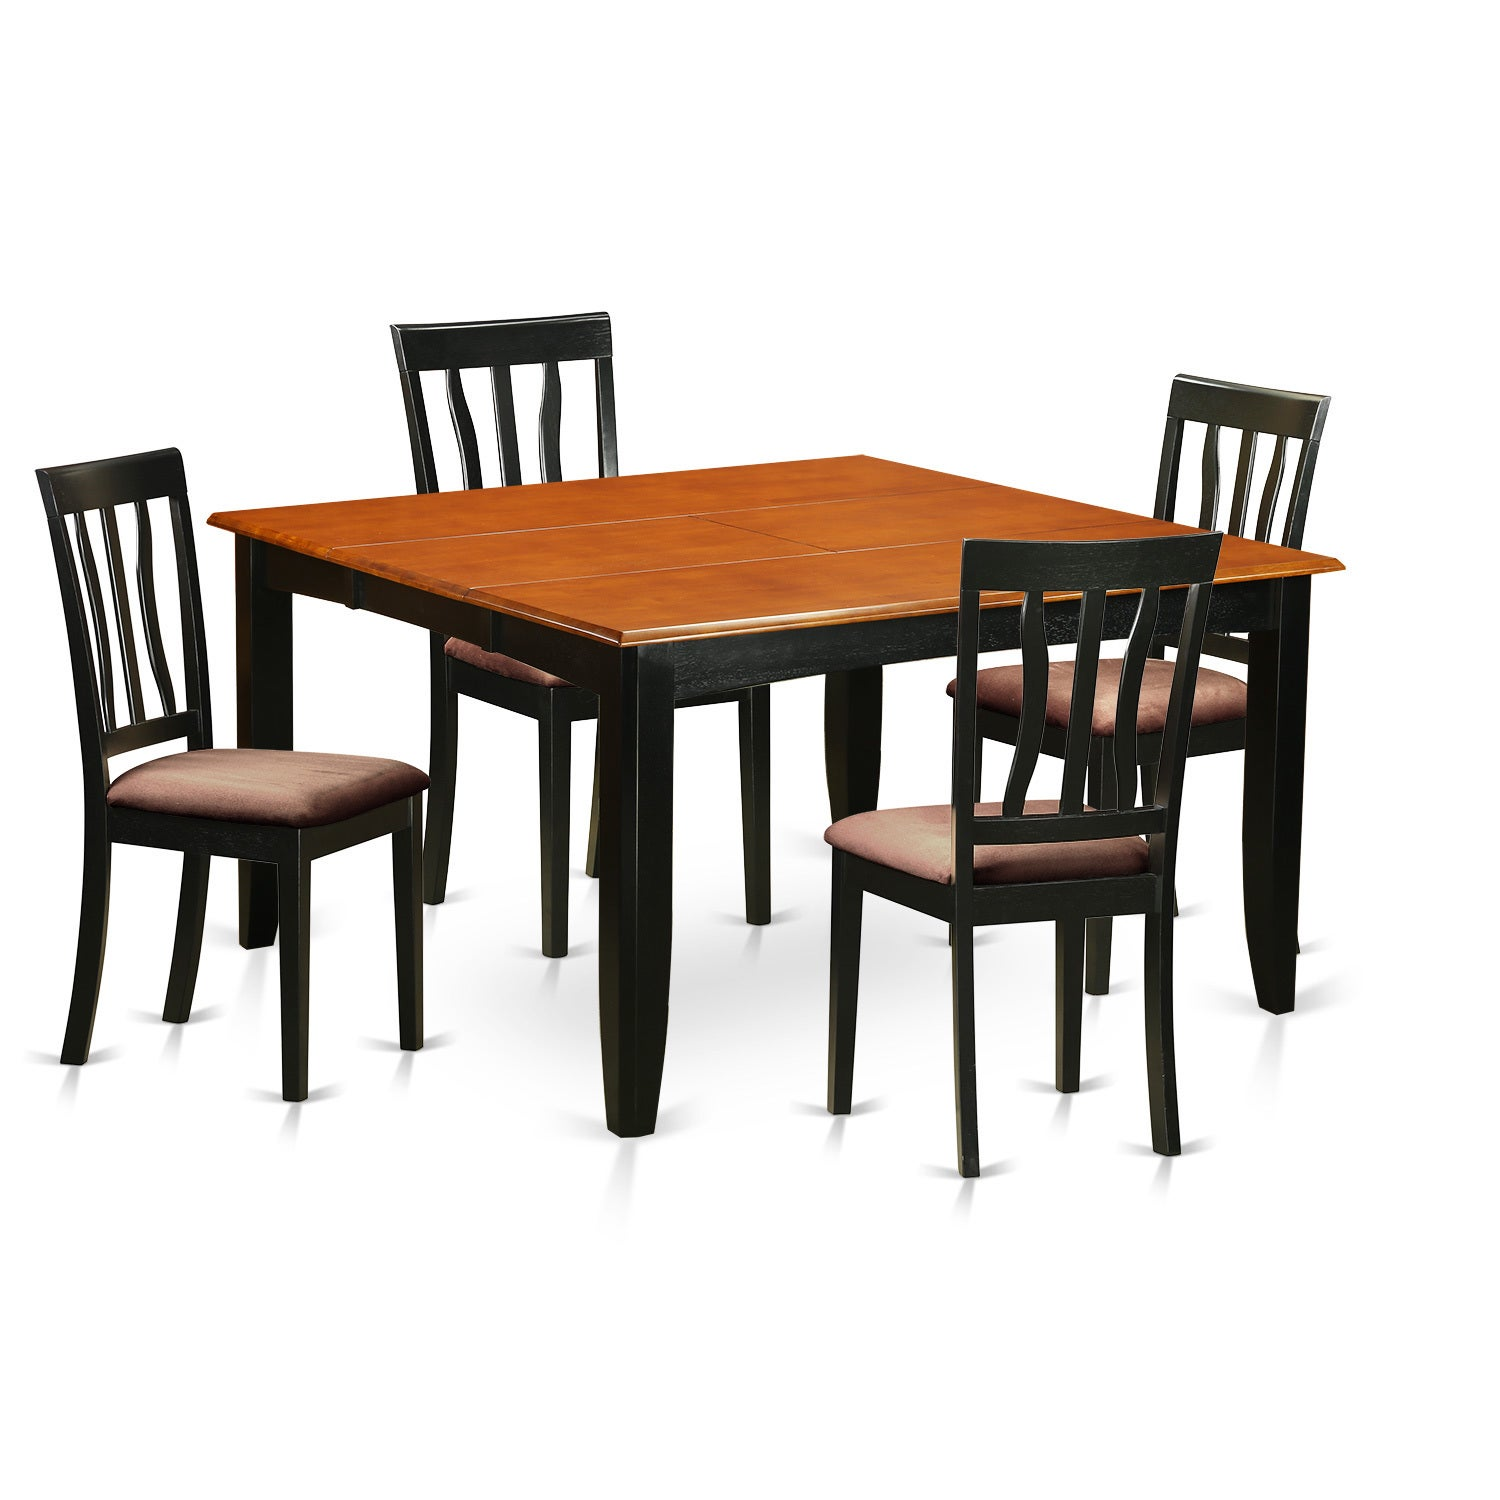 Shop pfan5 bch black cherry rubberwood kitchen dining table and 4 solid chairs pack of 5 free shipping today overstock com 11967759